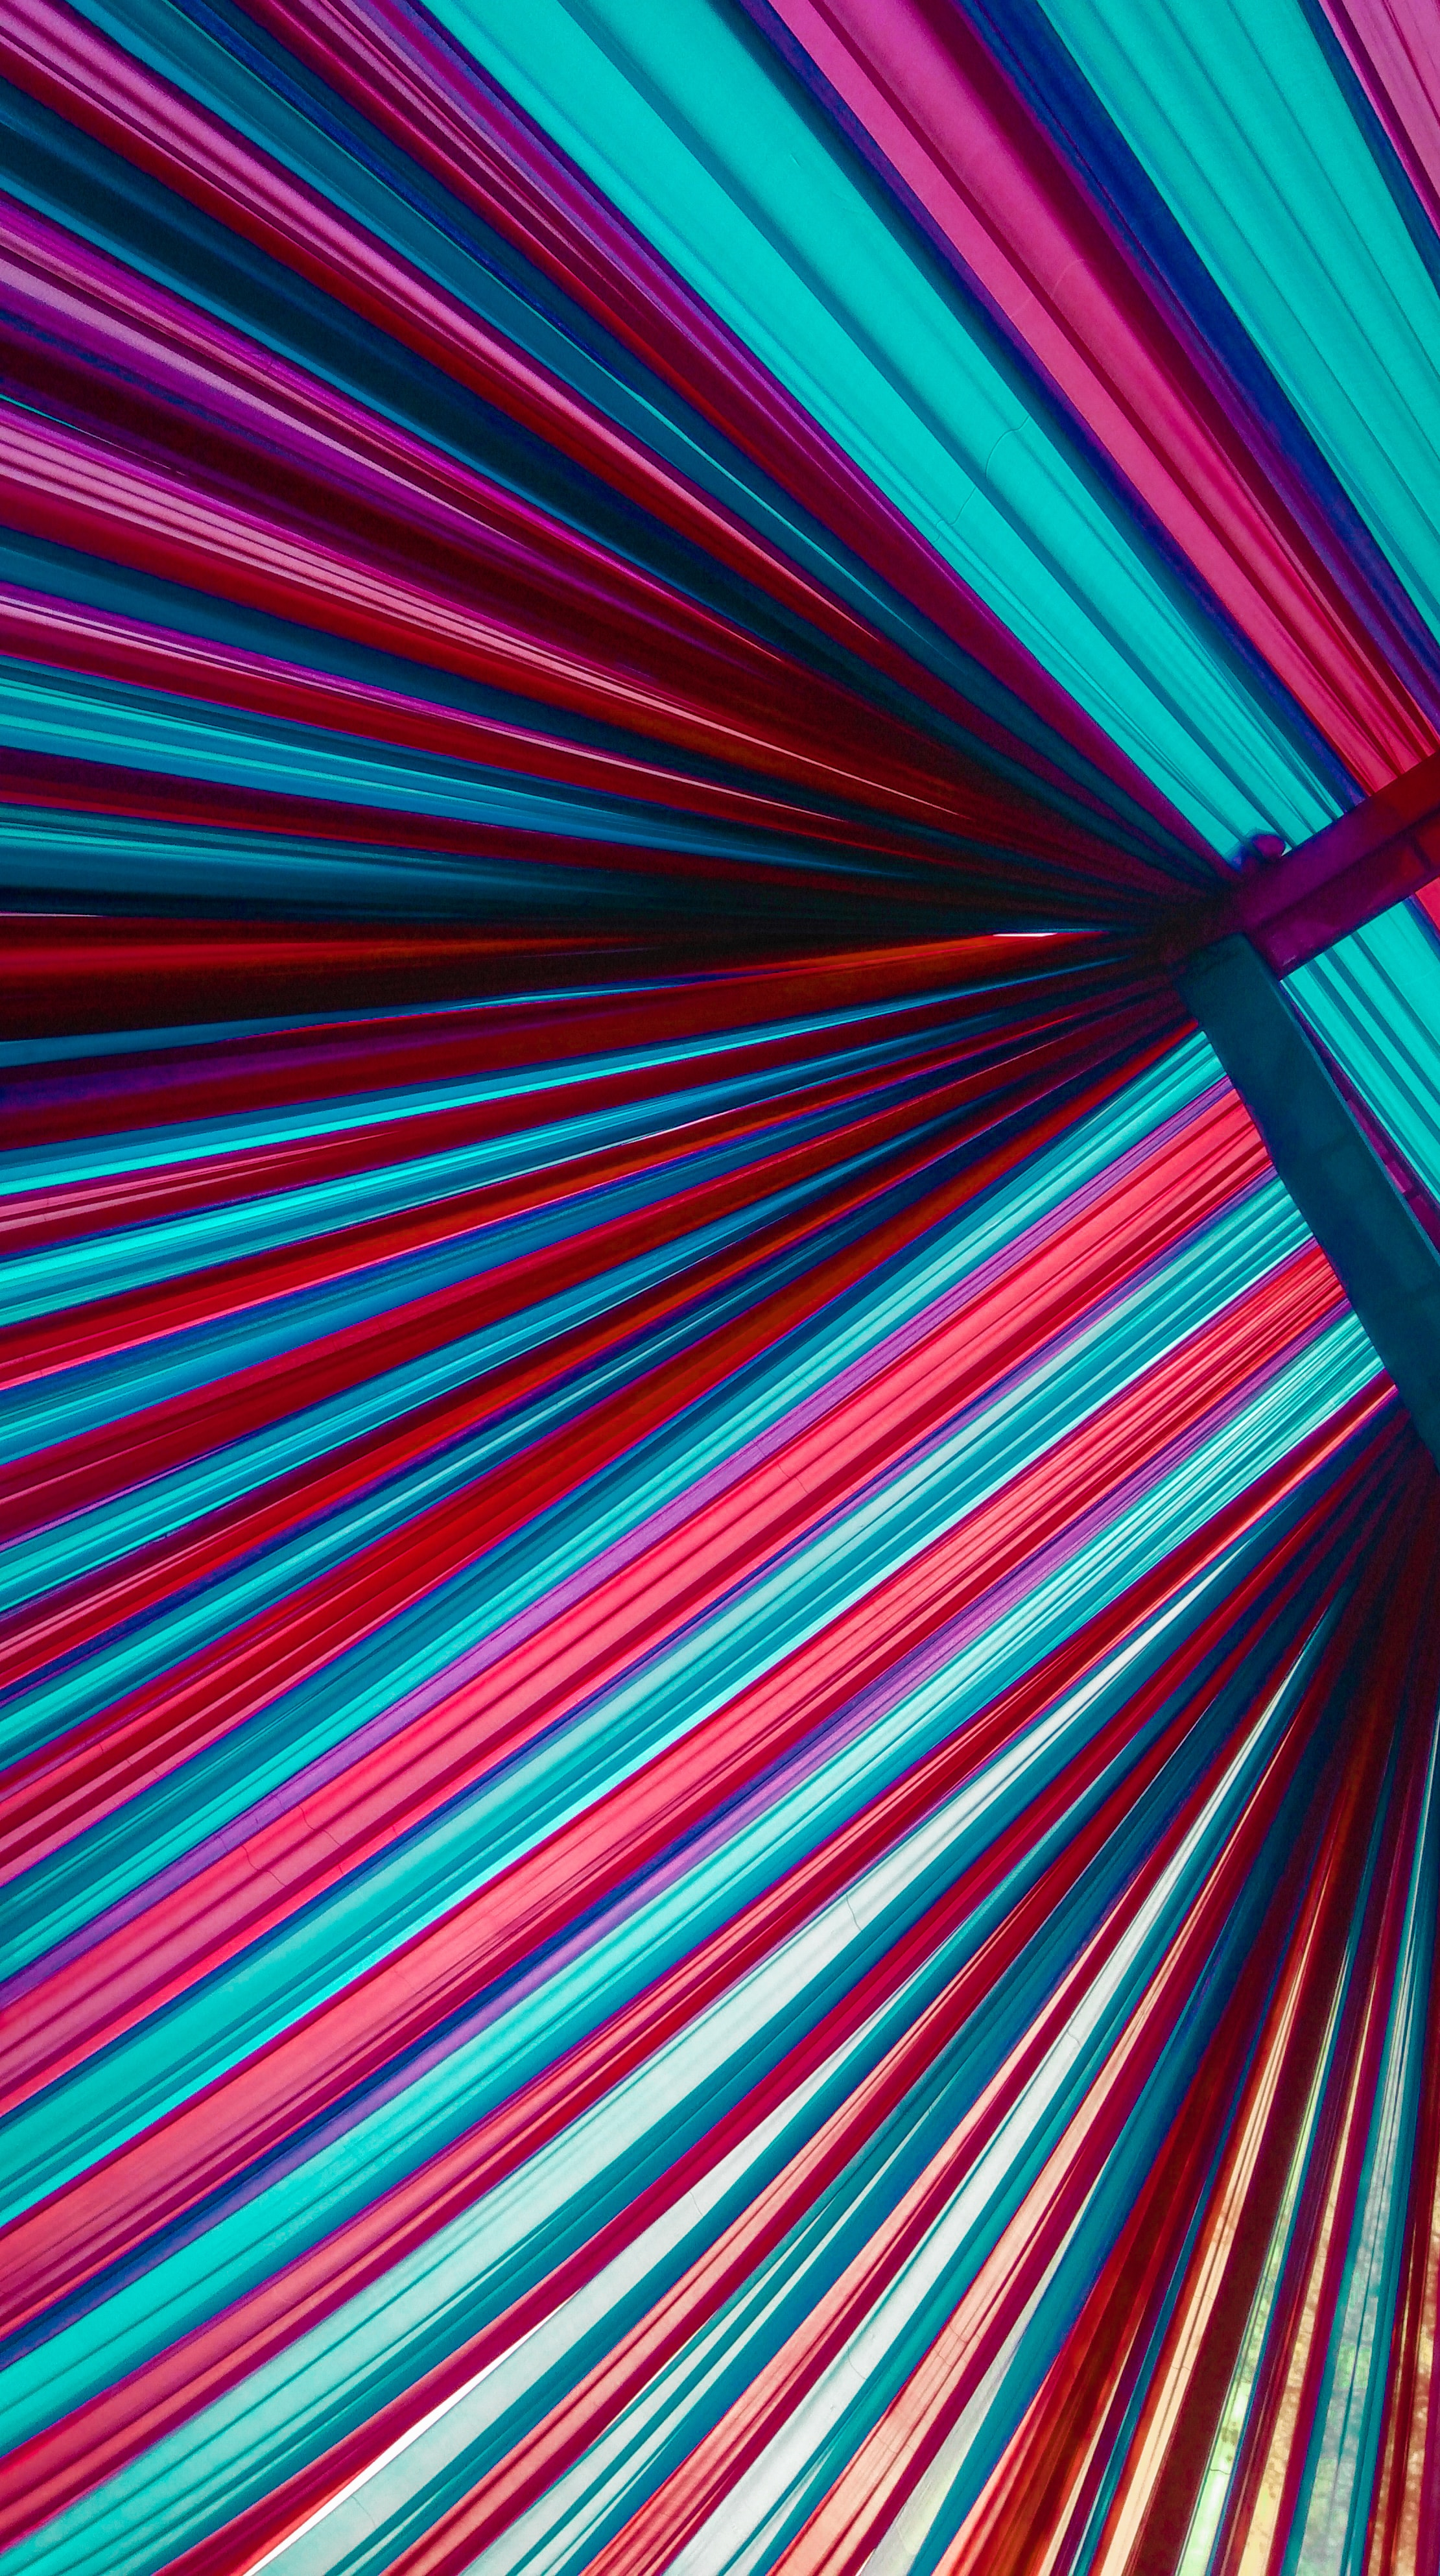 132669 Screensavers and Wallpapers Stripes for phone. Download Multicolored, Motley, Lines, Minimalism, Neon, Backlight, Illumination, Stripes, Streaks pictures for free